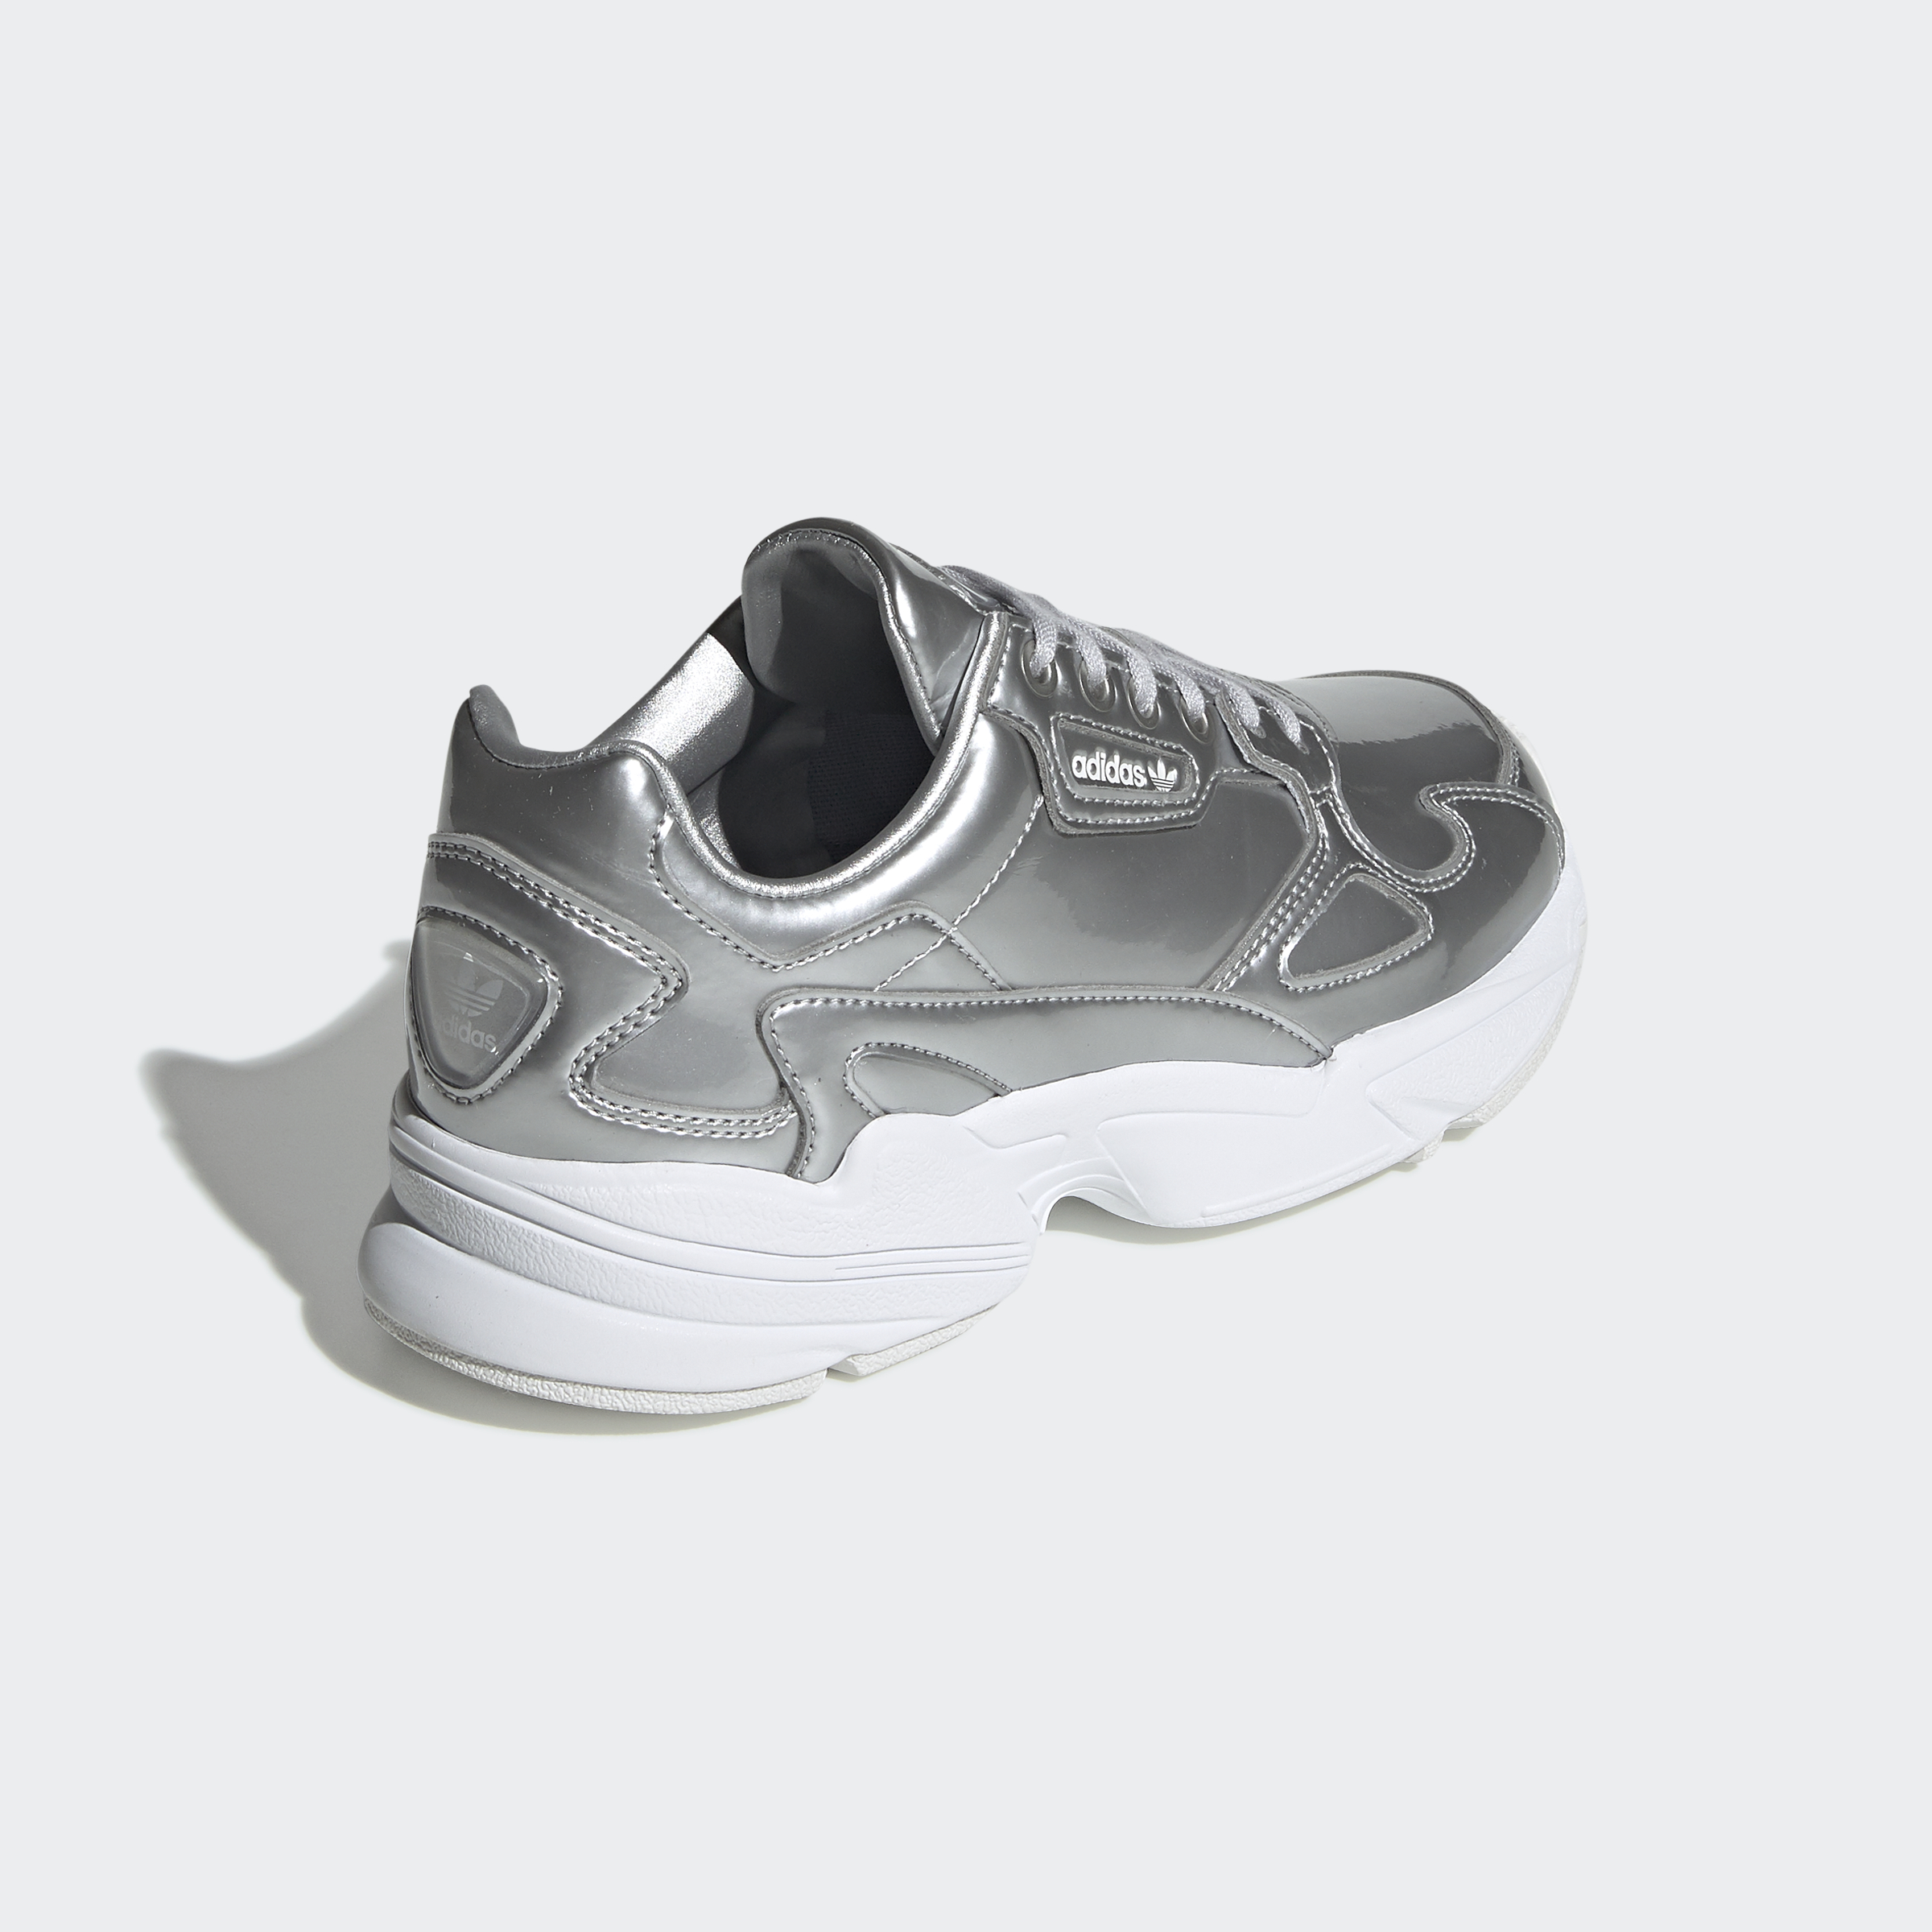 adidas-Falcon-Shoes-Women-039-s-Athletic-amp-Sneakers miniature 13